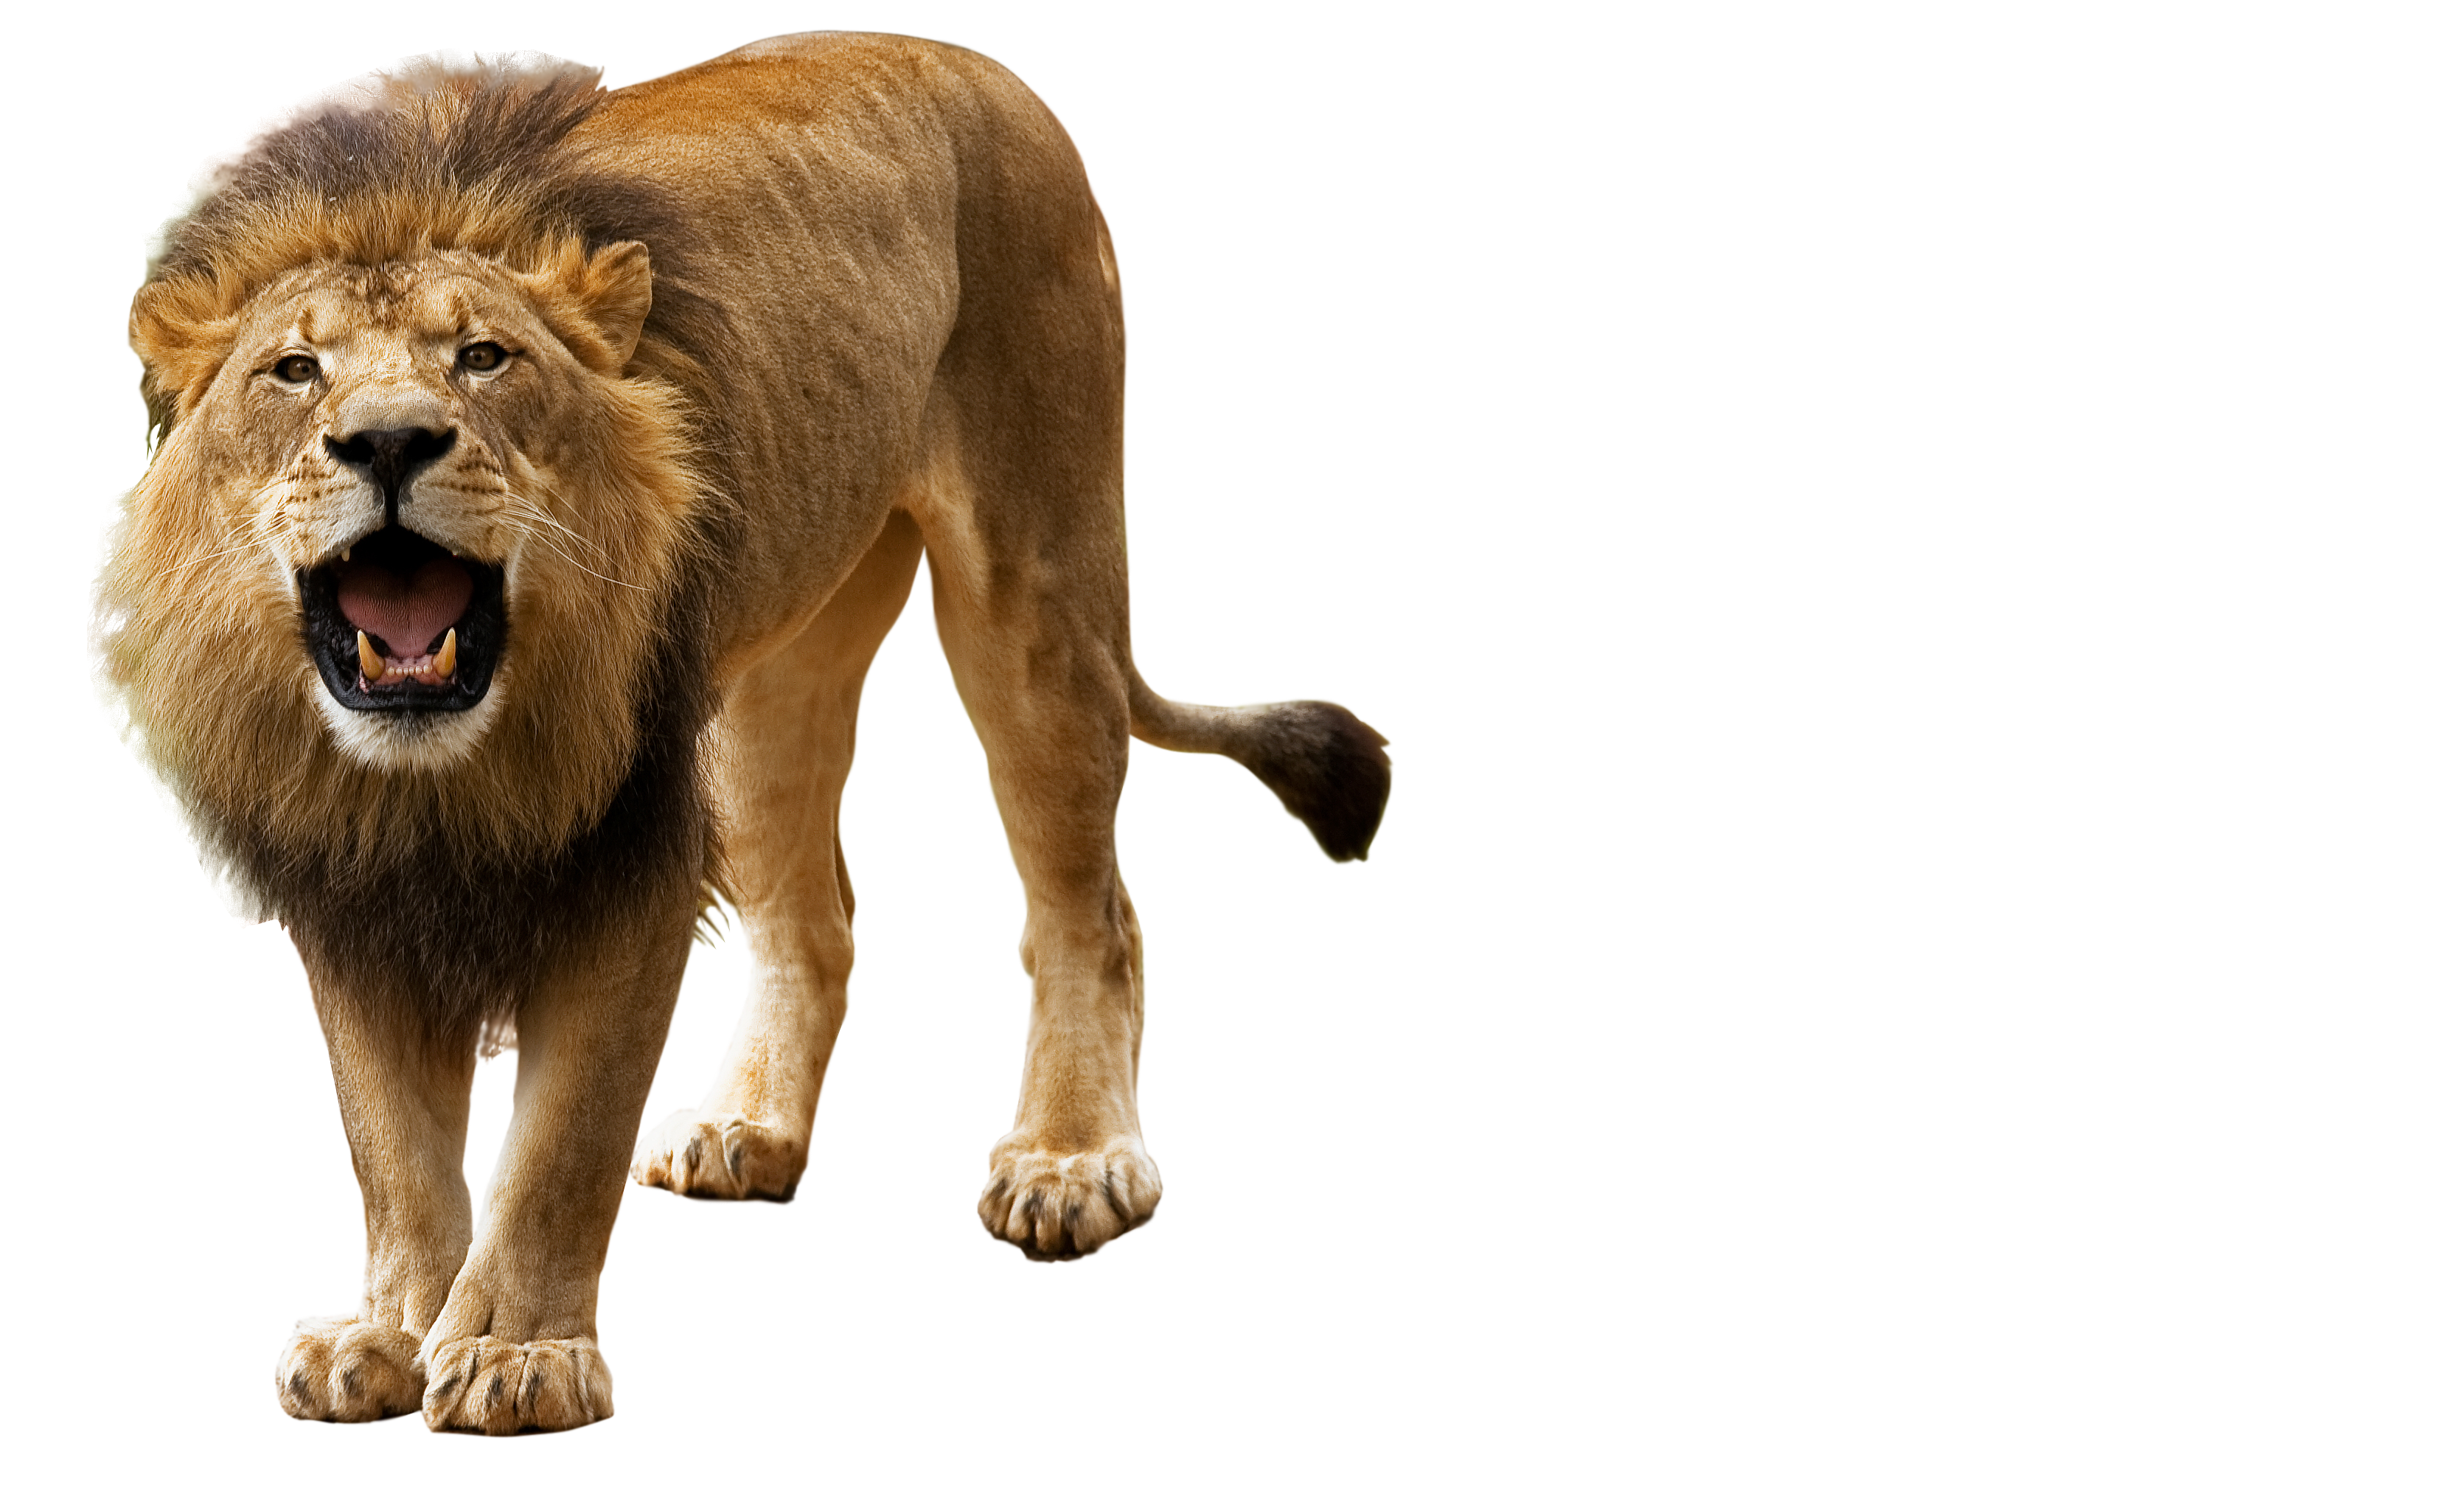 Free Icons Png:Roar, Angry Lion Png